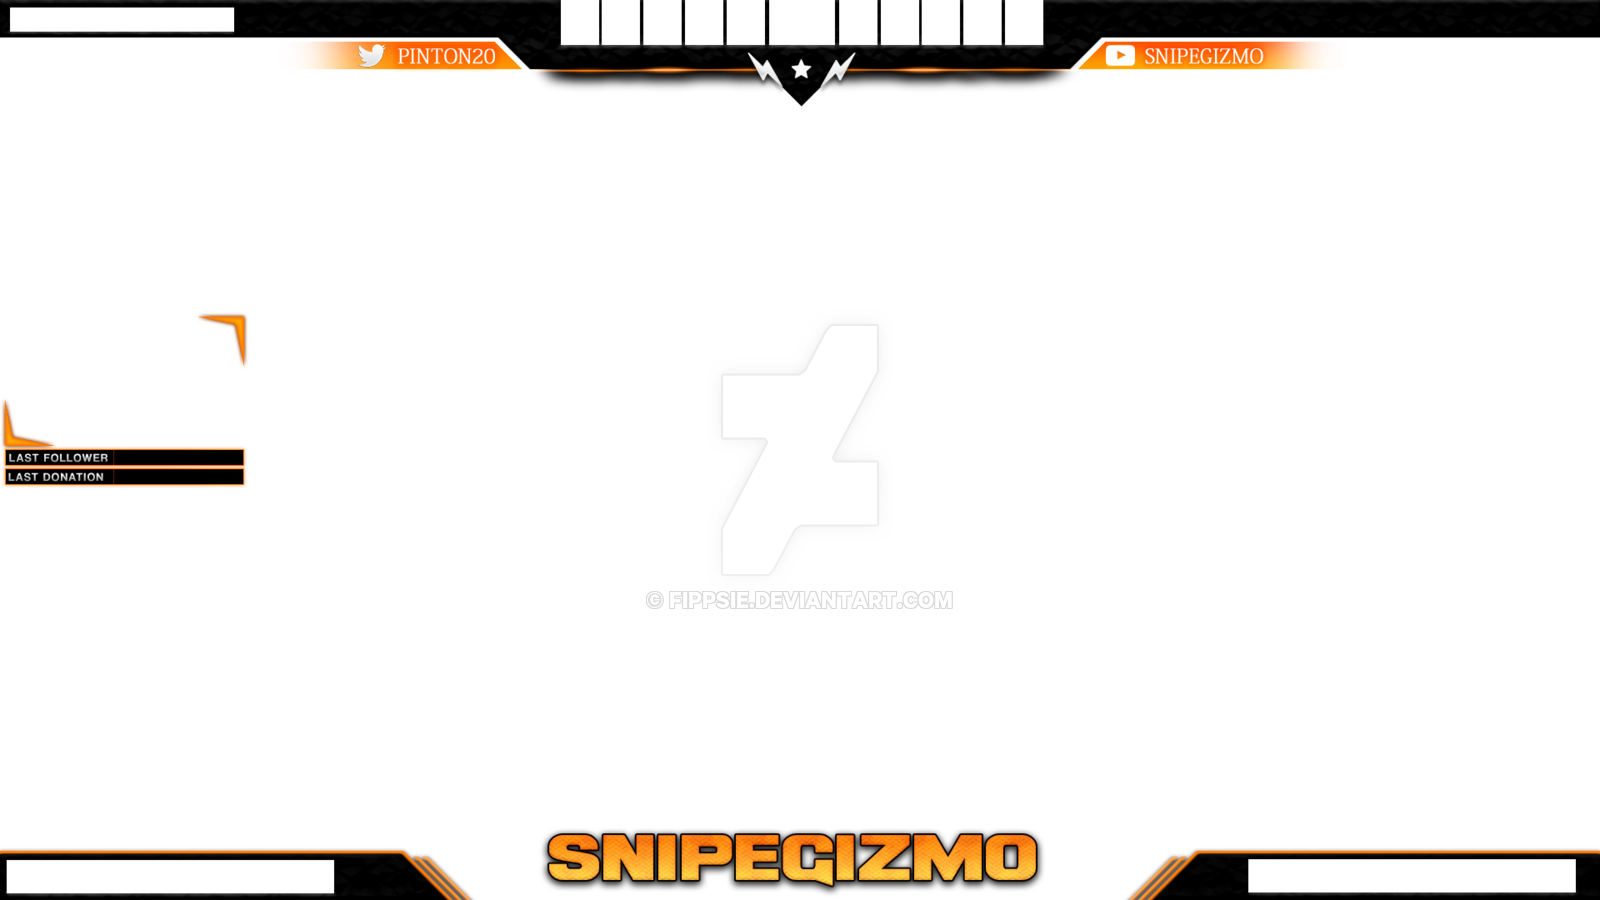 Stream overlay template png. Twitch csgo for snipegizmo